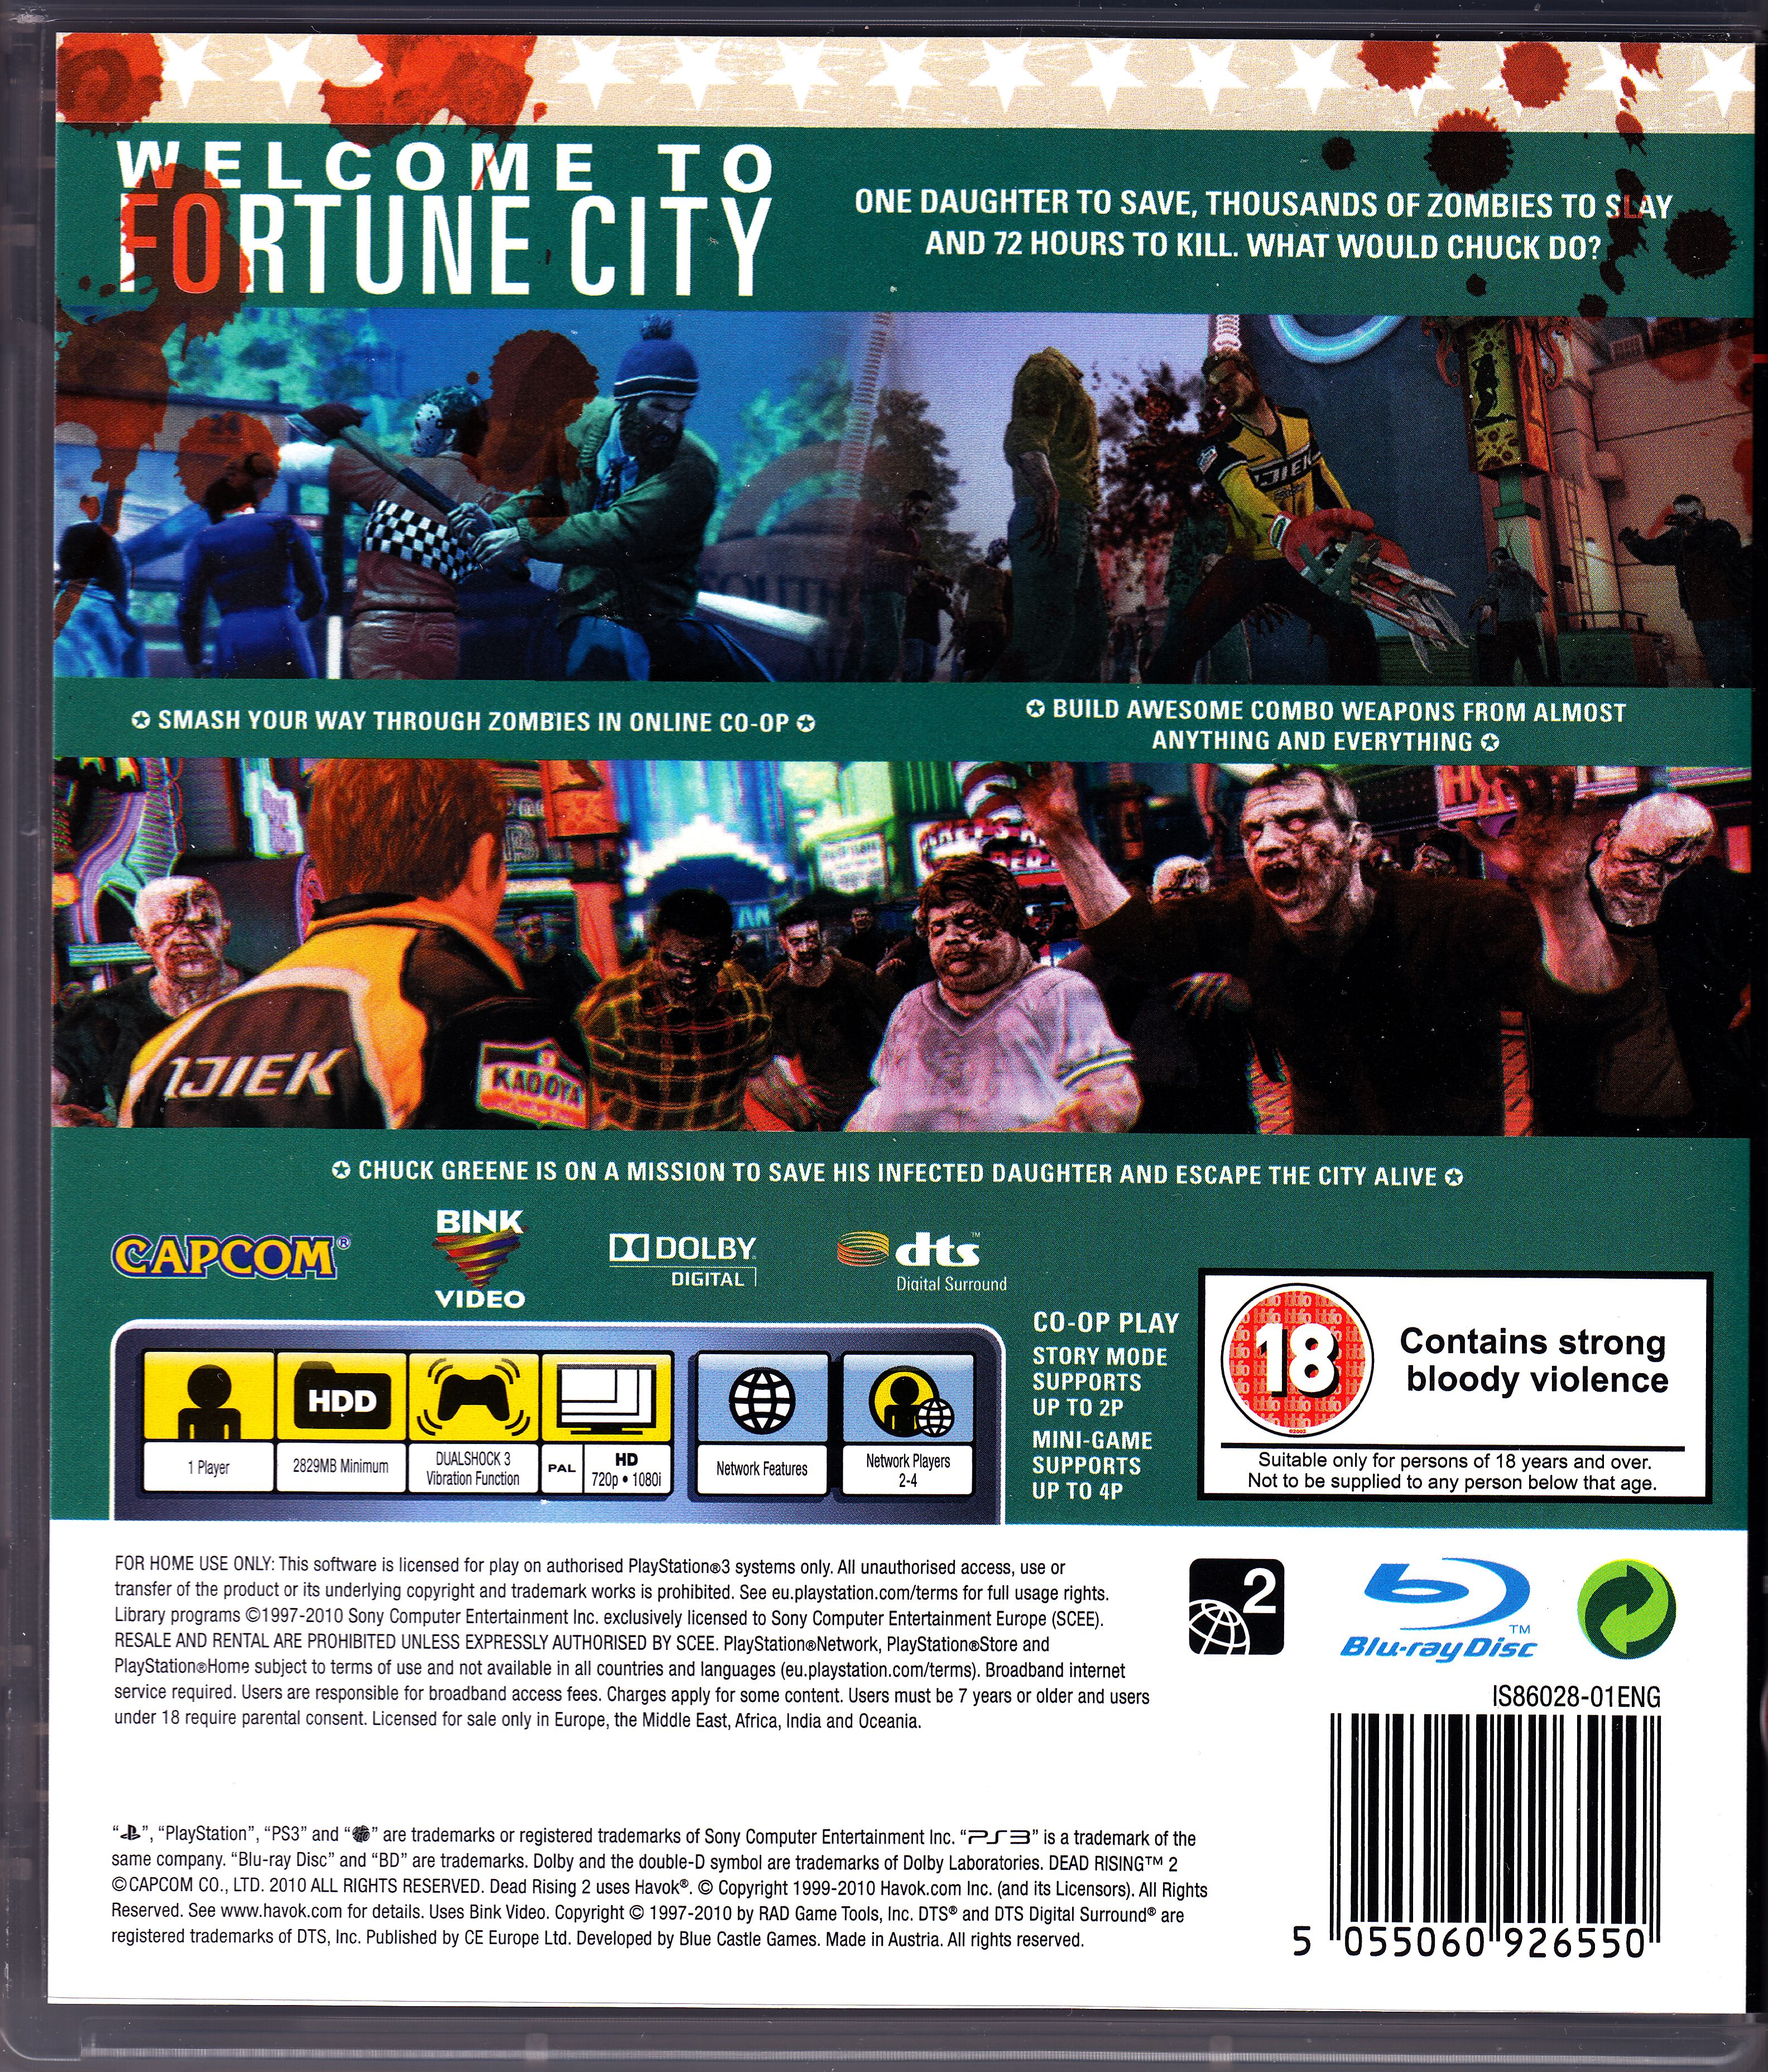 Dead rising 2 trophy guide & road map playstationtrophies. Org.